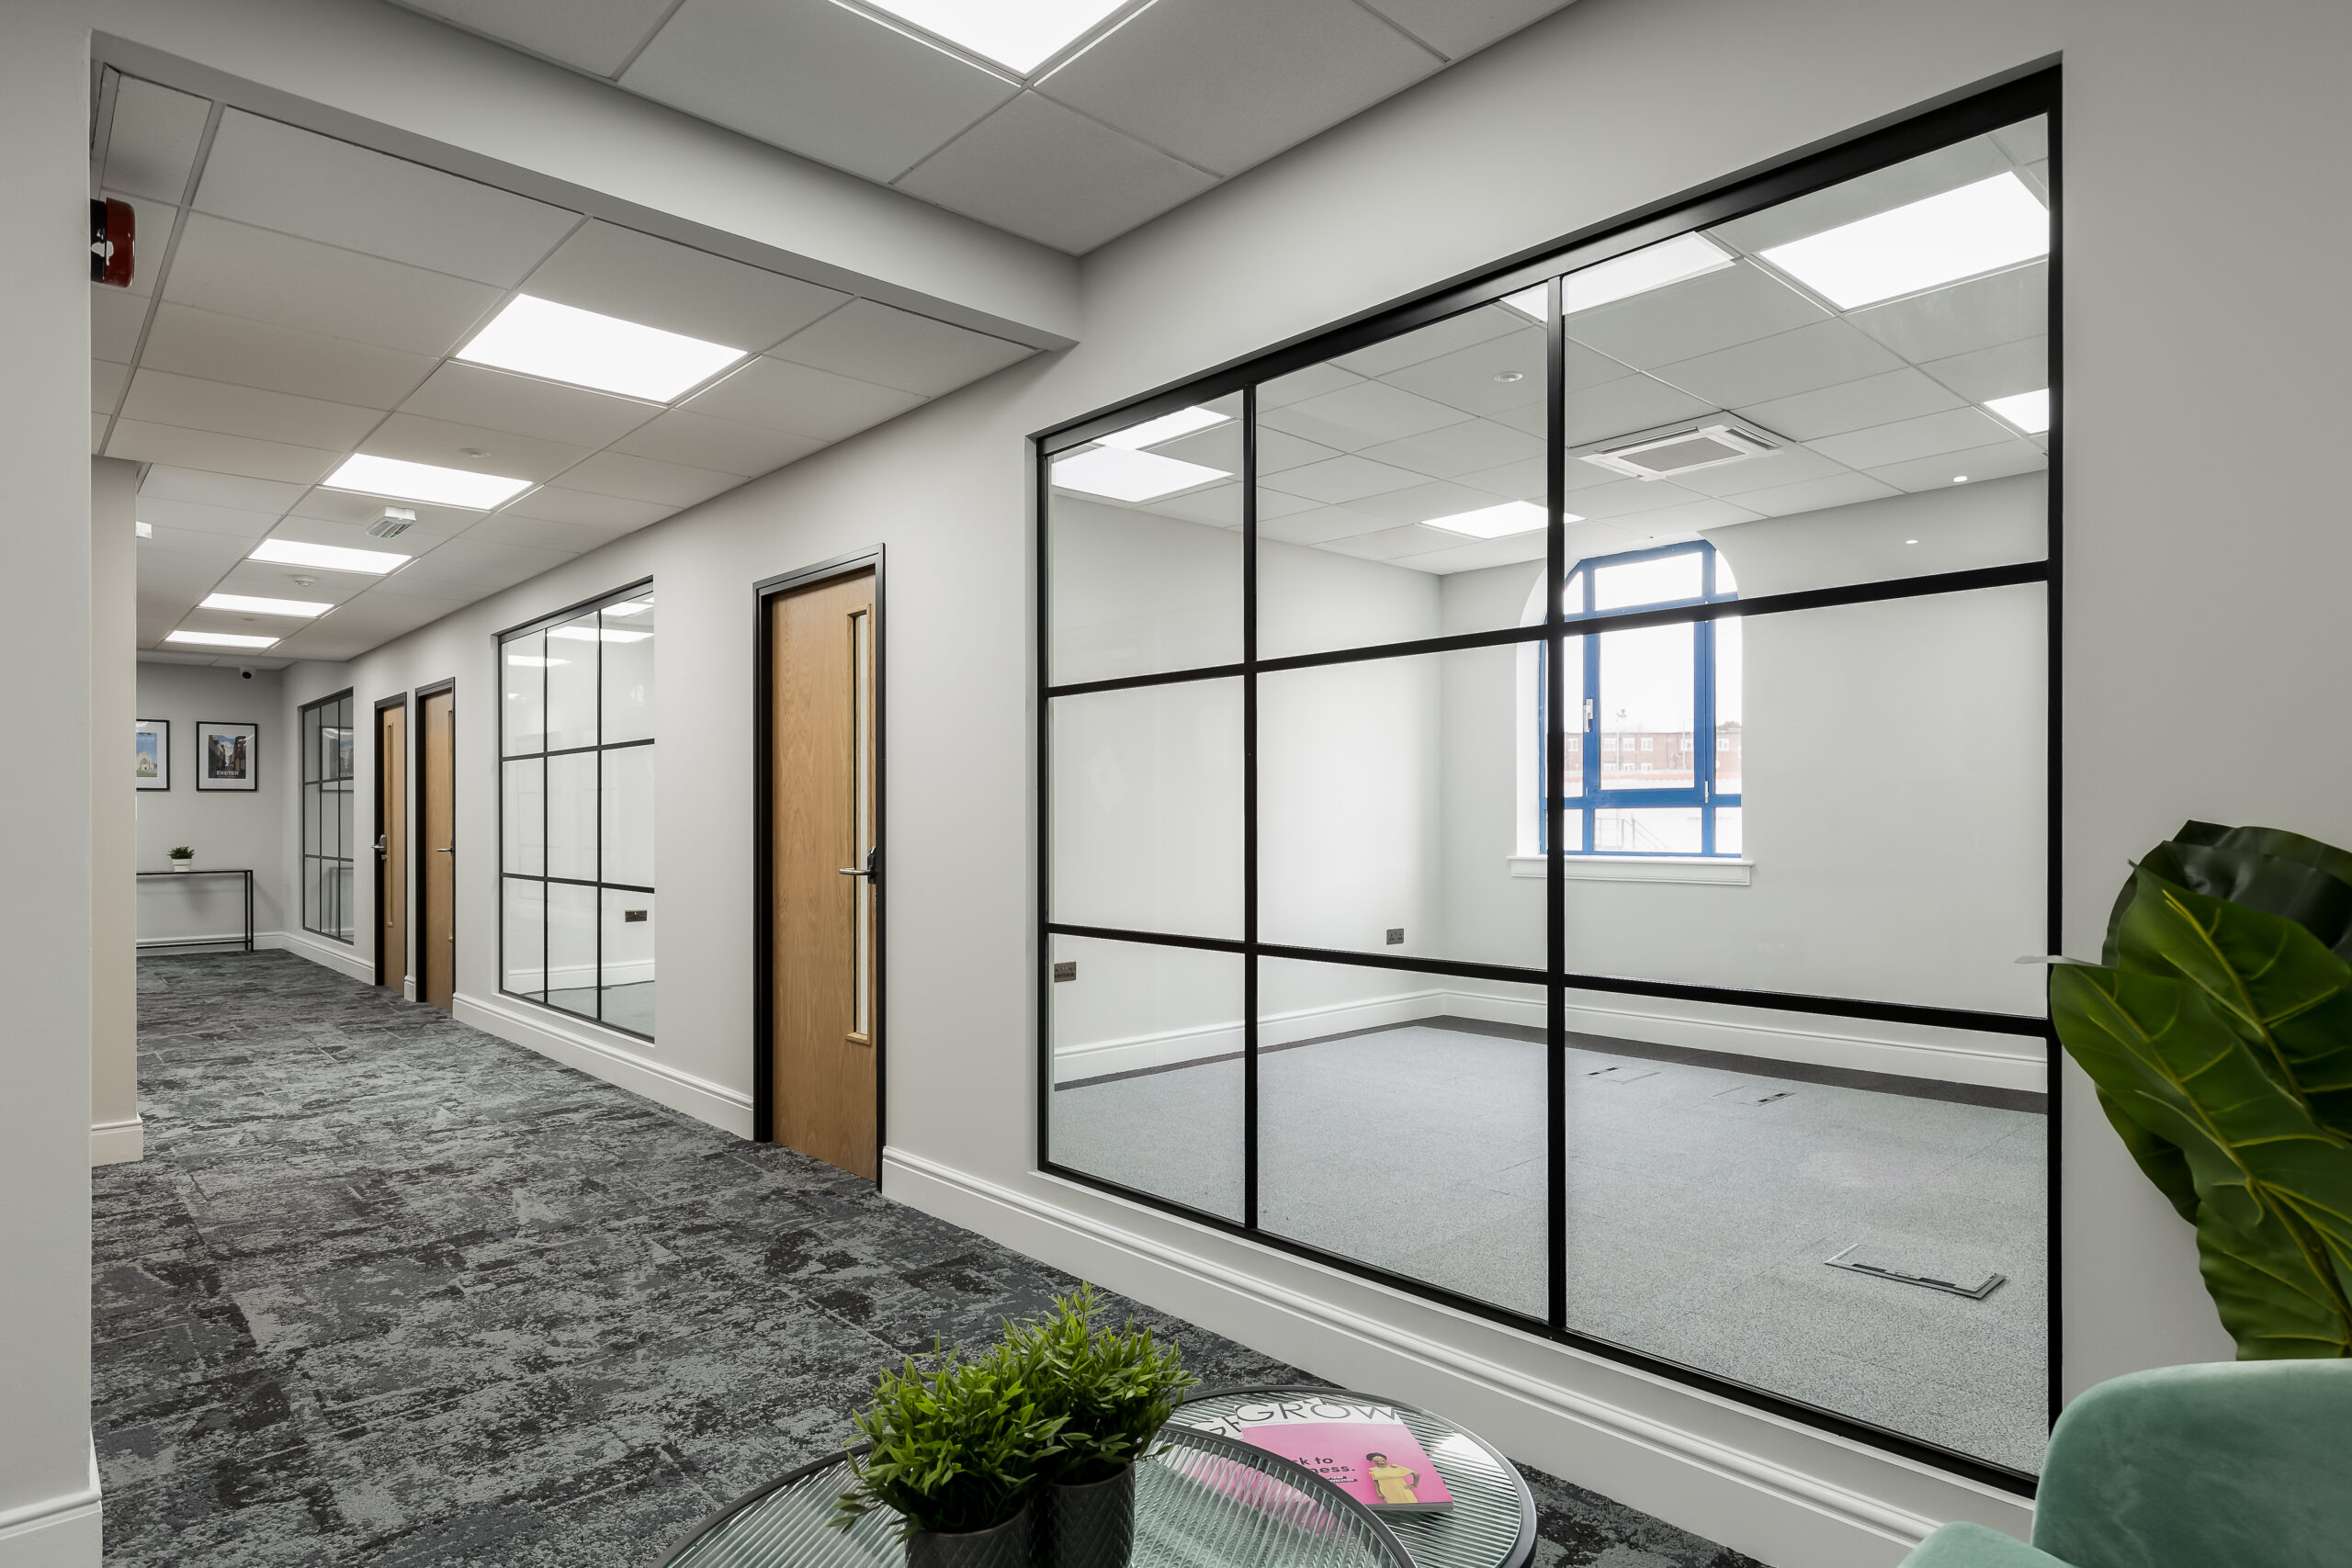 Office space Bournemouth, Coworking ExeterServiced office Bournemouth, Serviced office Exeter, Virtual office Exeter, Virtual office Bournemouth, Meeting rooms Exeter, Meeting rooms Bournemouth, Coworking Bournemouth, Virtual office